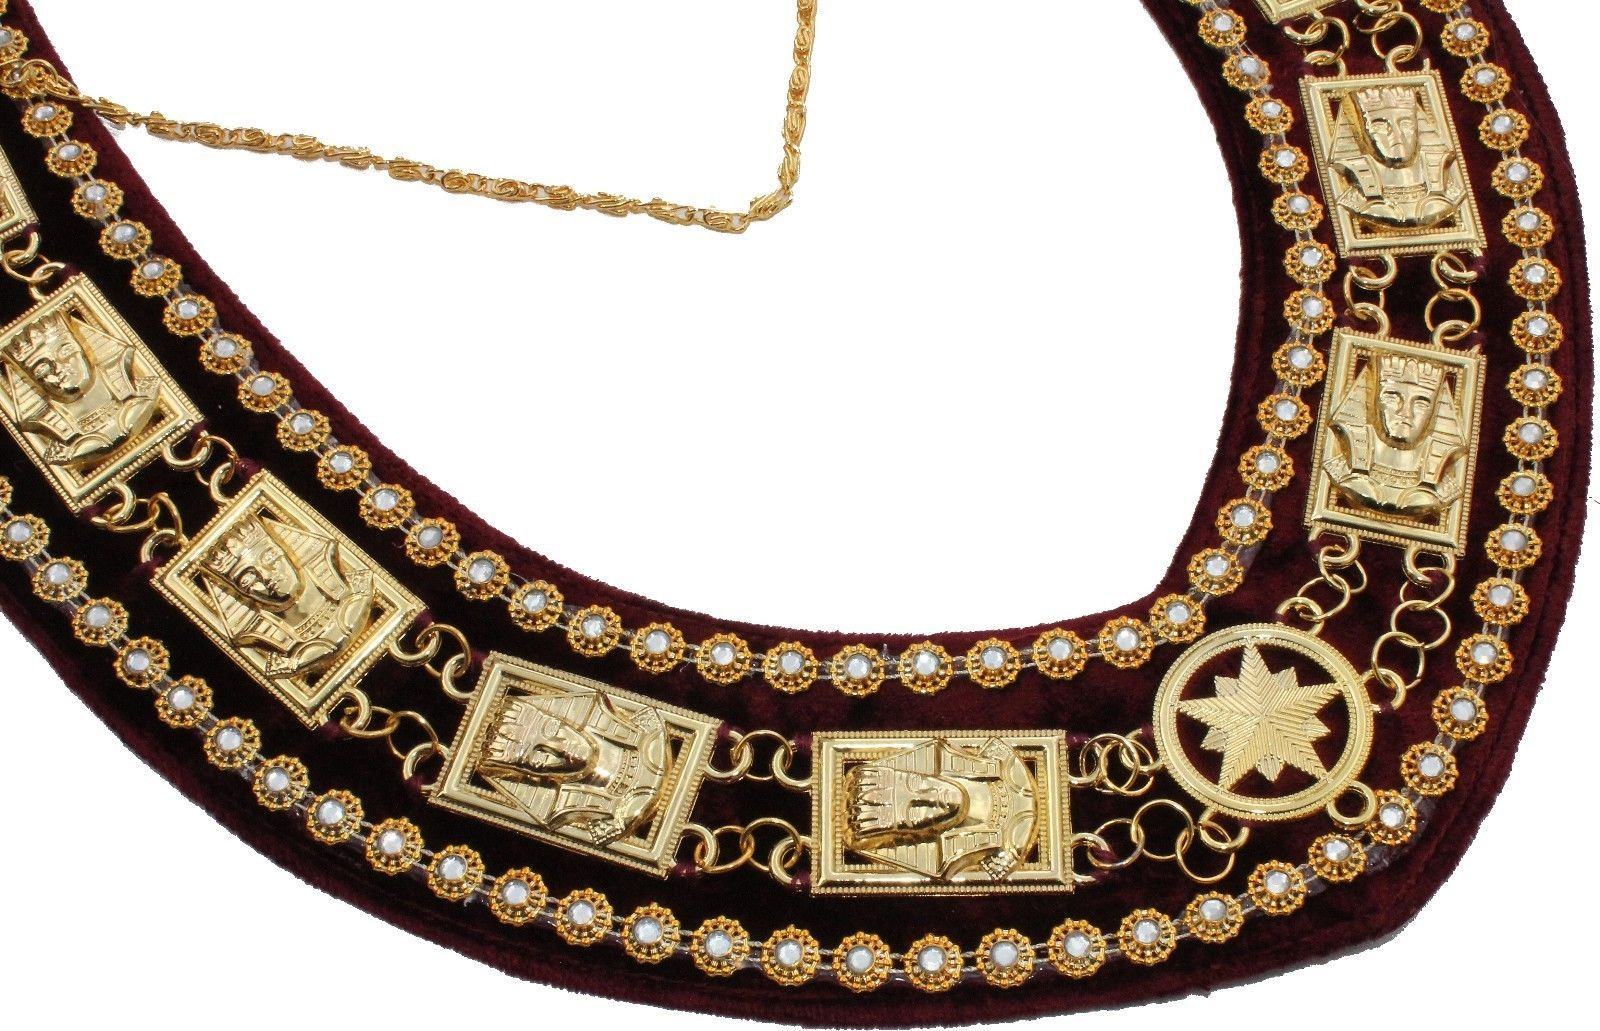 Sphinx Head - Rhinestone Chain Collar - Gold/Silver on Maroon + Free Case - Bricks Masons